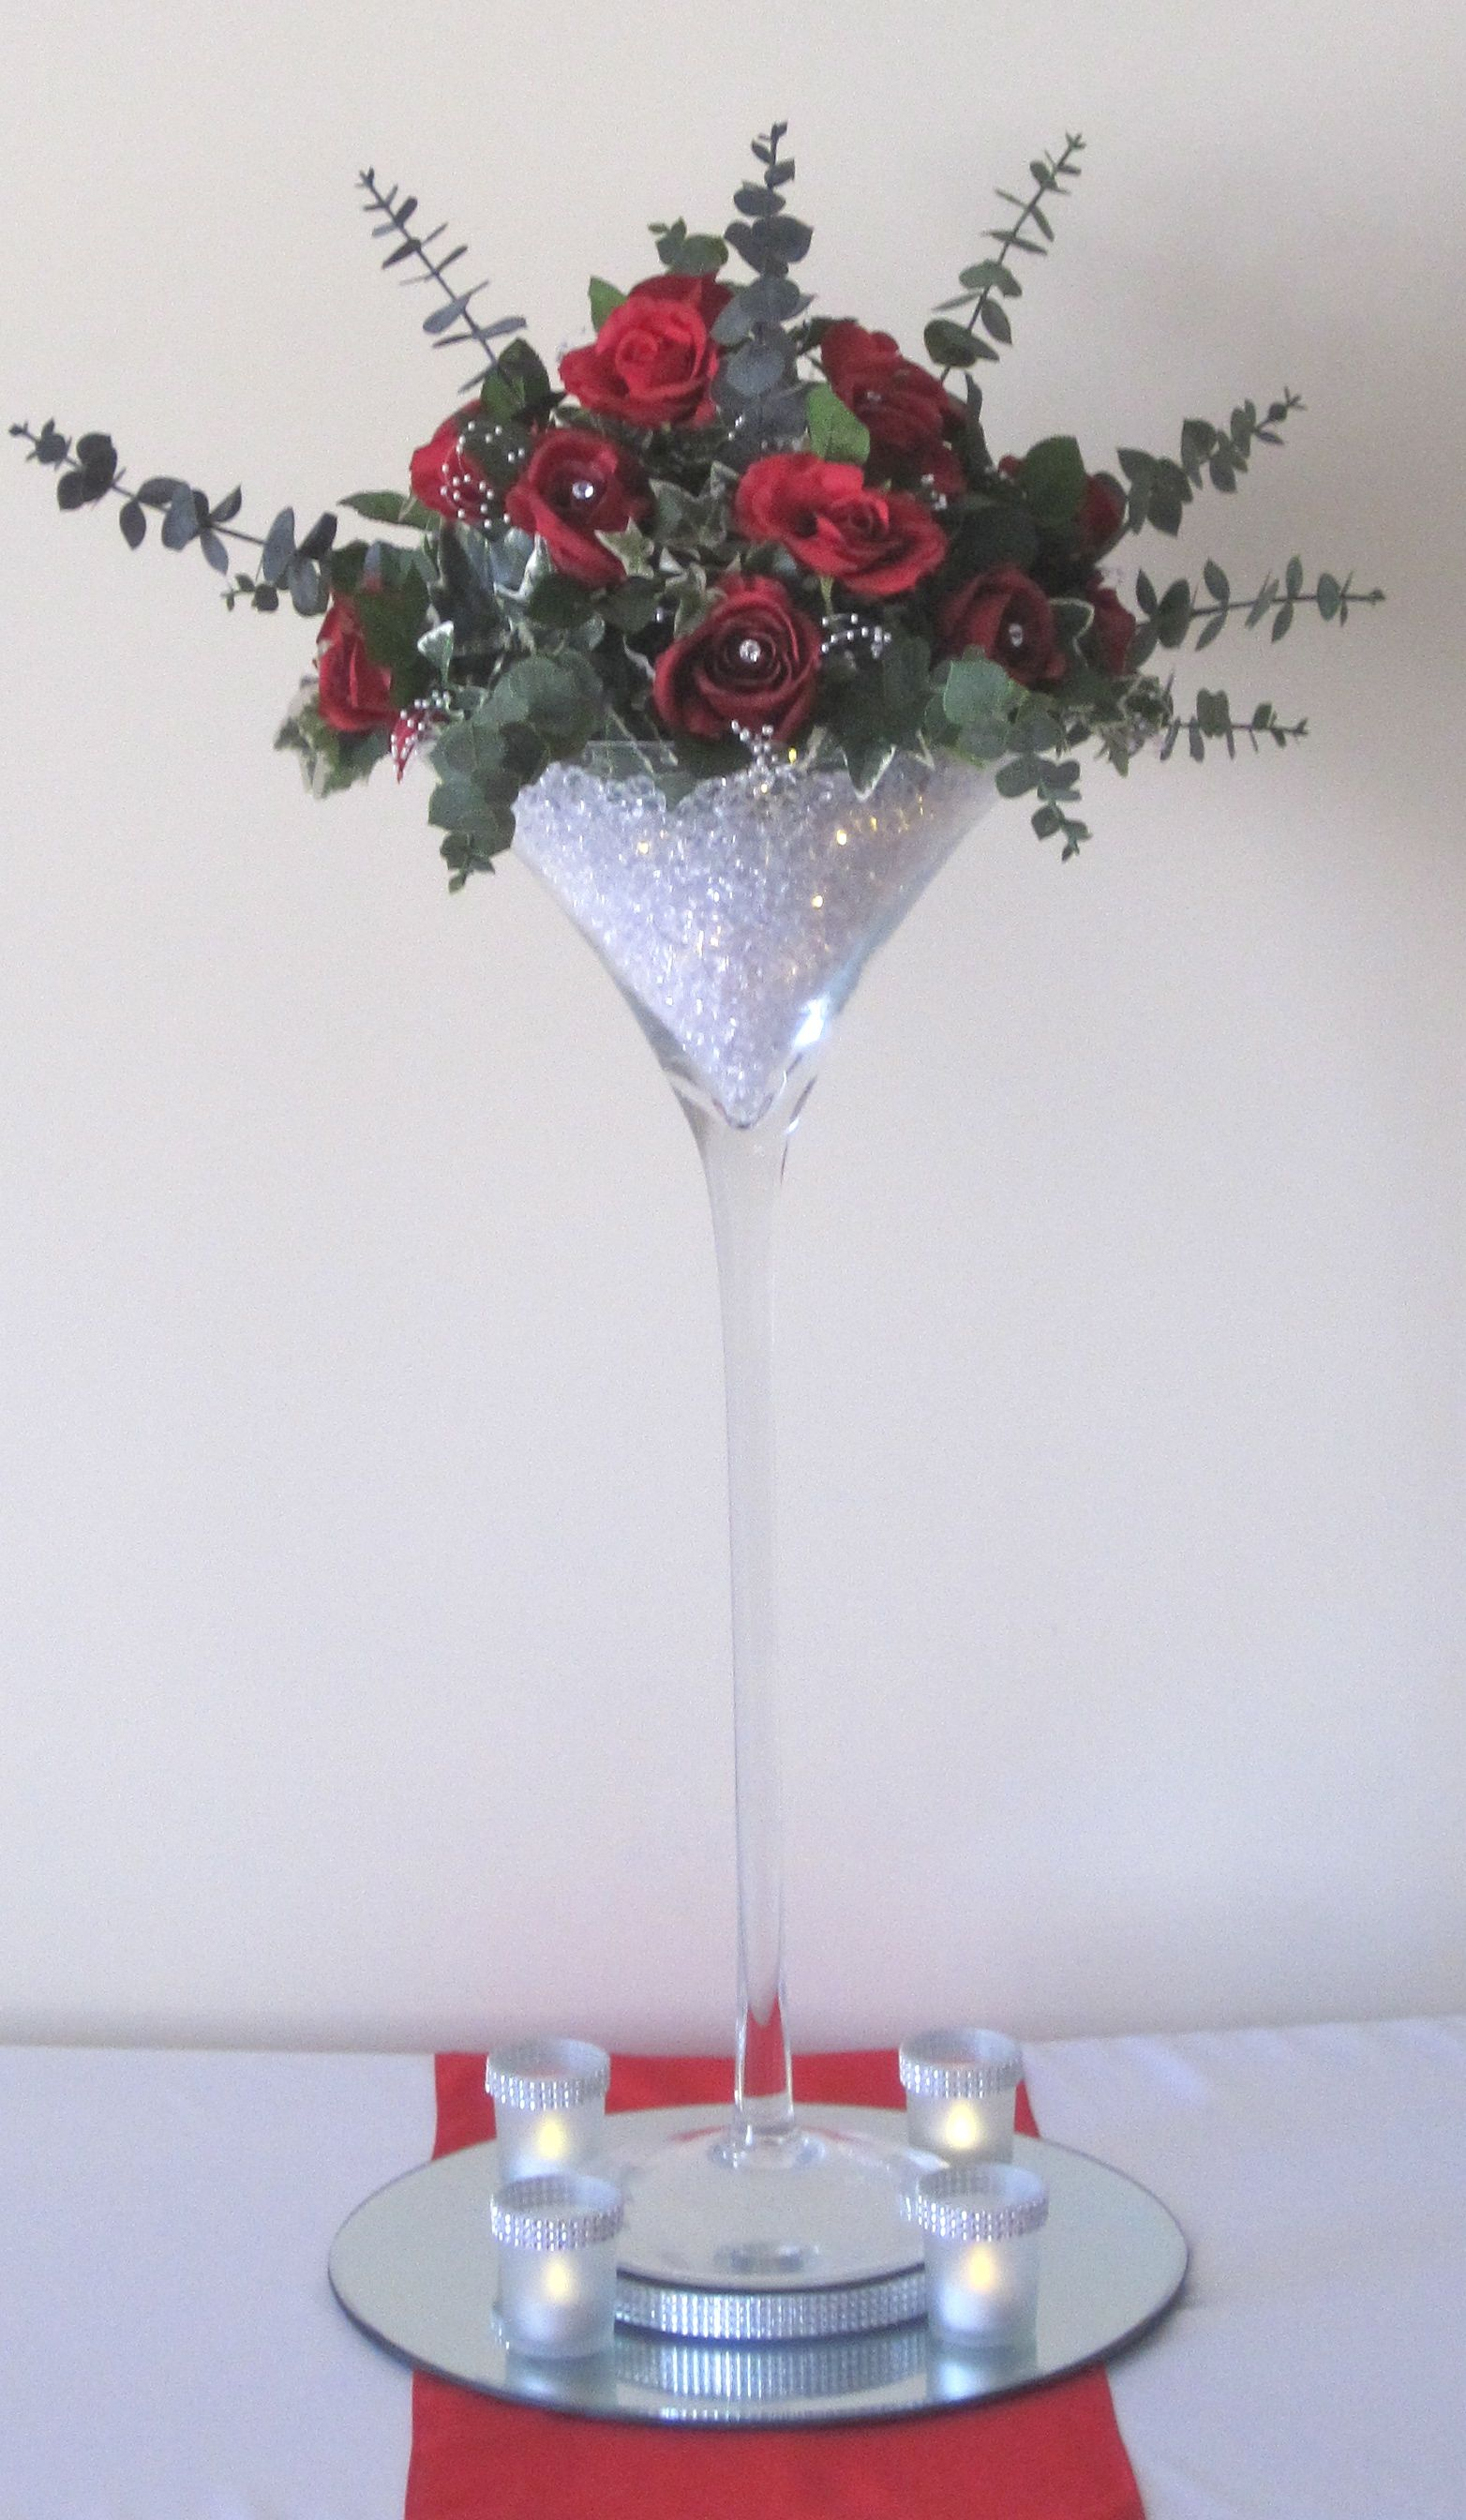 70cm Martini Vase with red silk roses and eucalyptus, acrylic stones ...